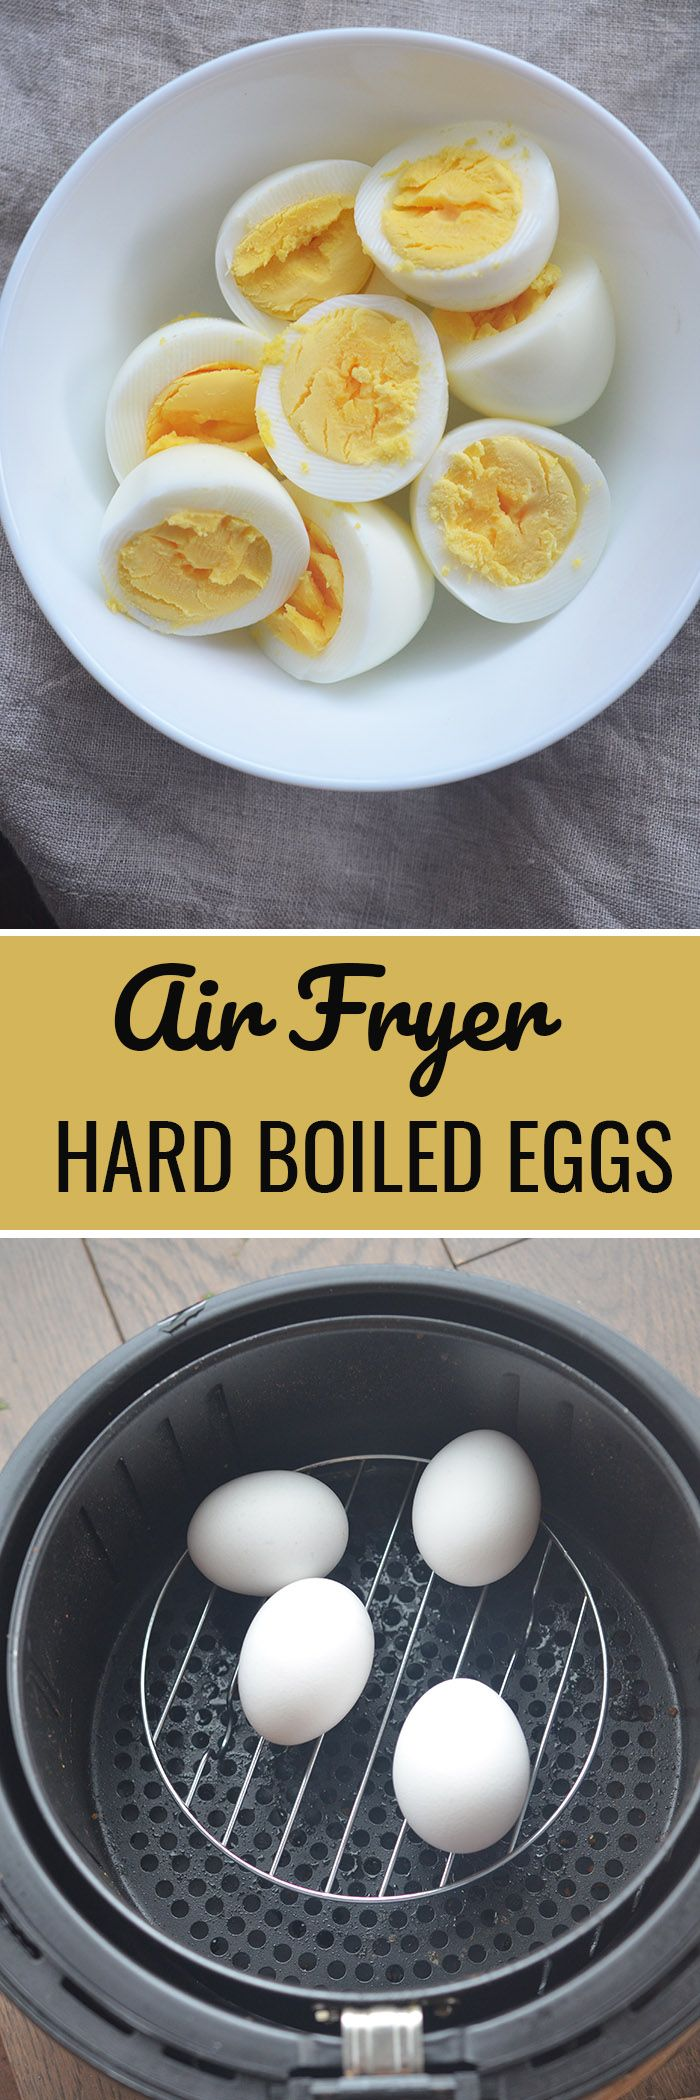 Air Fryer Hard Boiled Eggs - perfectly cooked eggs in the air fryer! #airfryer #airfryecipes #eggs #healthy